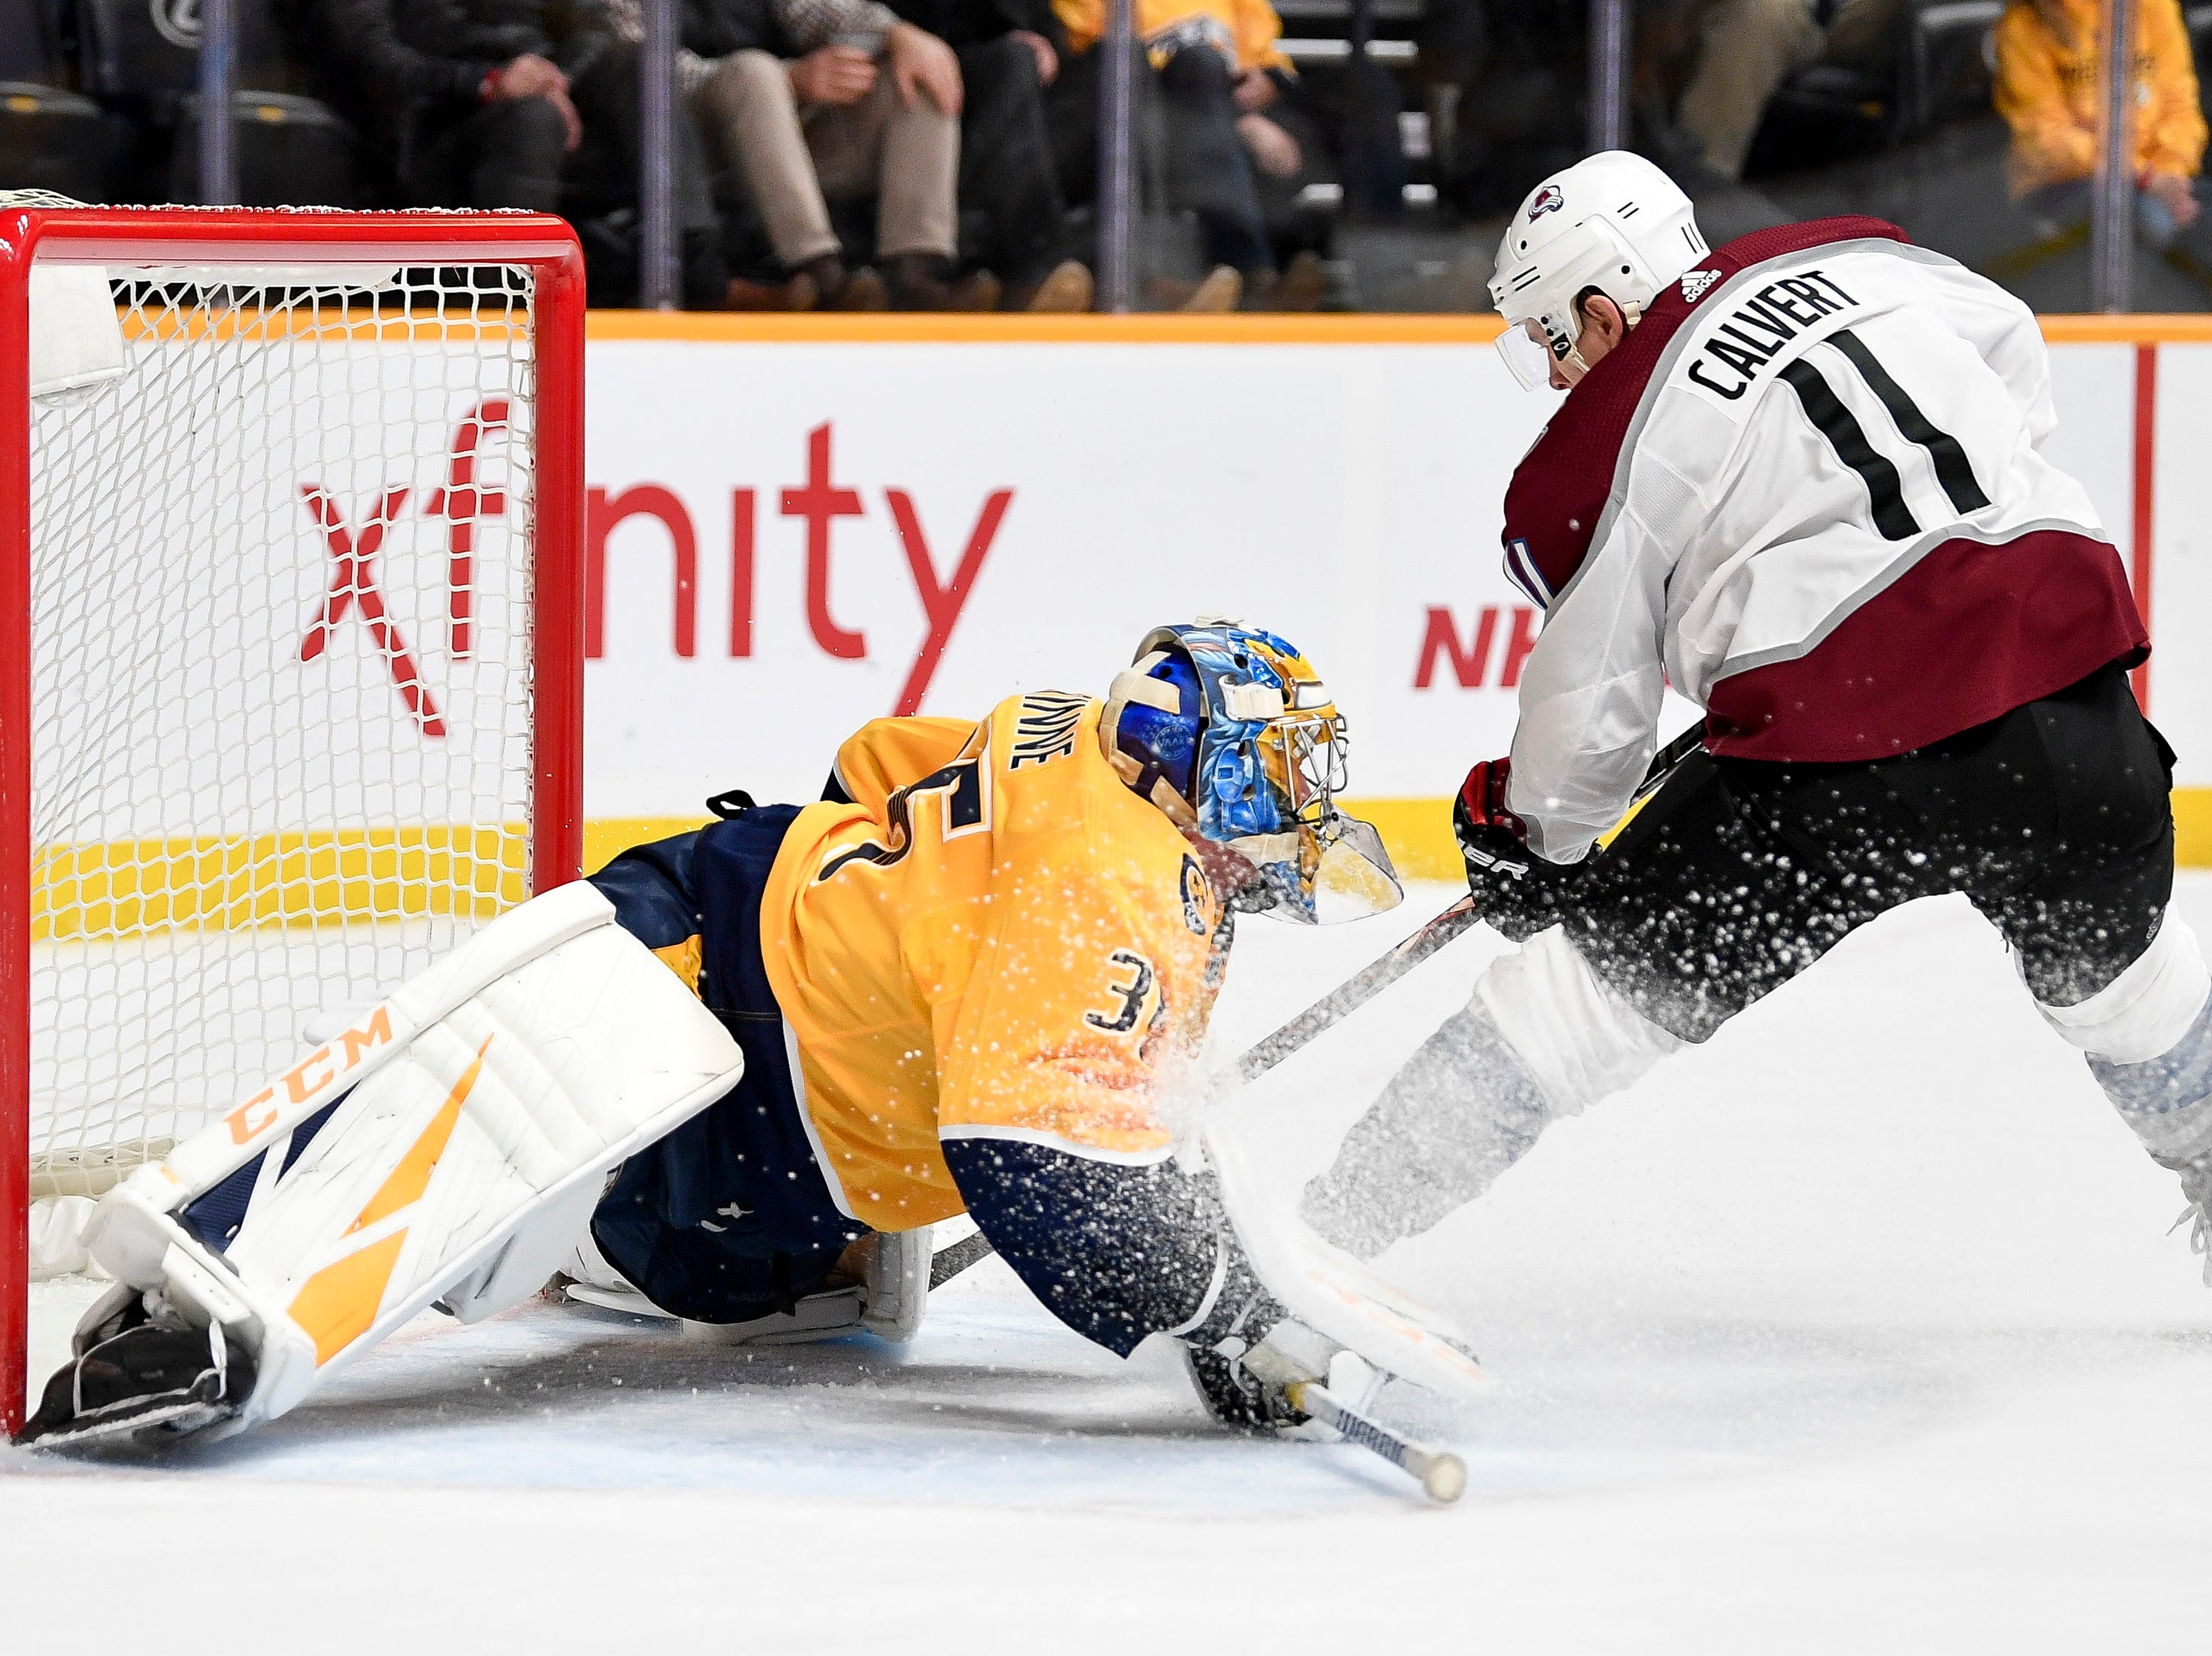 Nashville Predators goaltender Pekka Rinne (35) stops a shot from Colorado Avalanche left wing Matt Calvert (11) during the second period at Bridgestone Arena in Nashville, Tenn., Tuesday, Nov. 27, 2018.